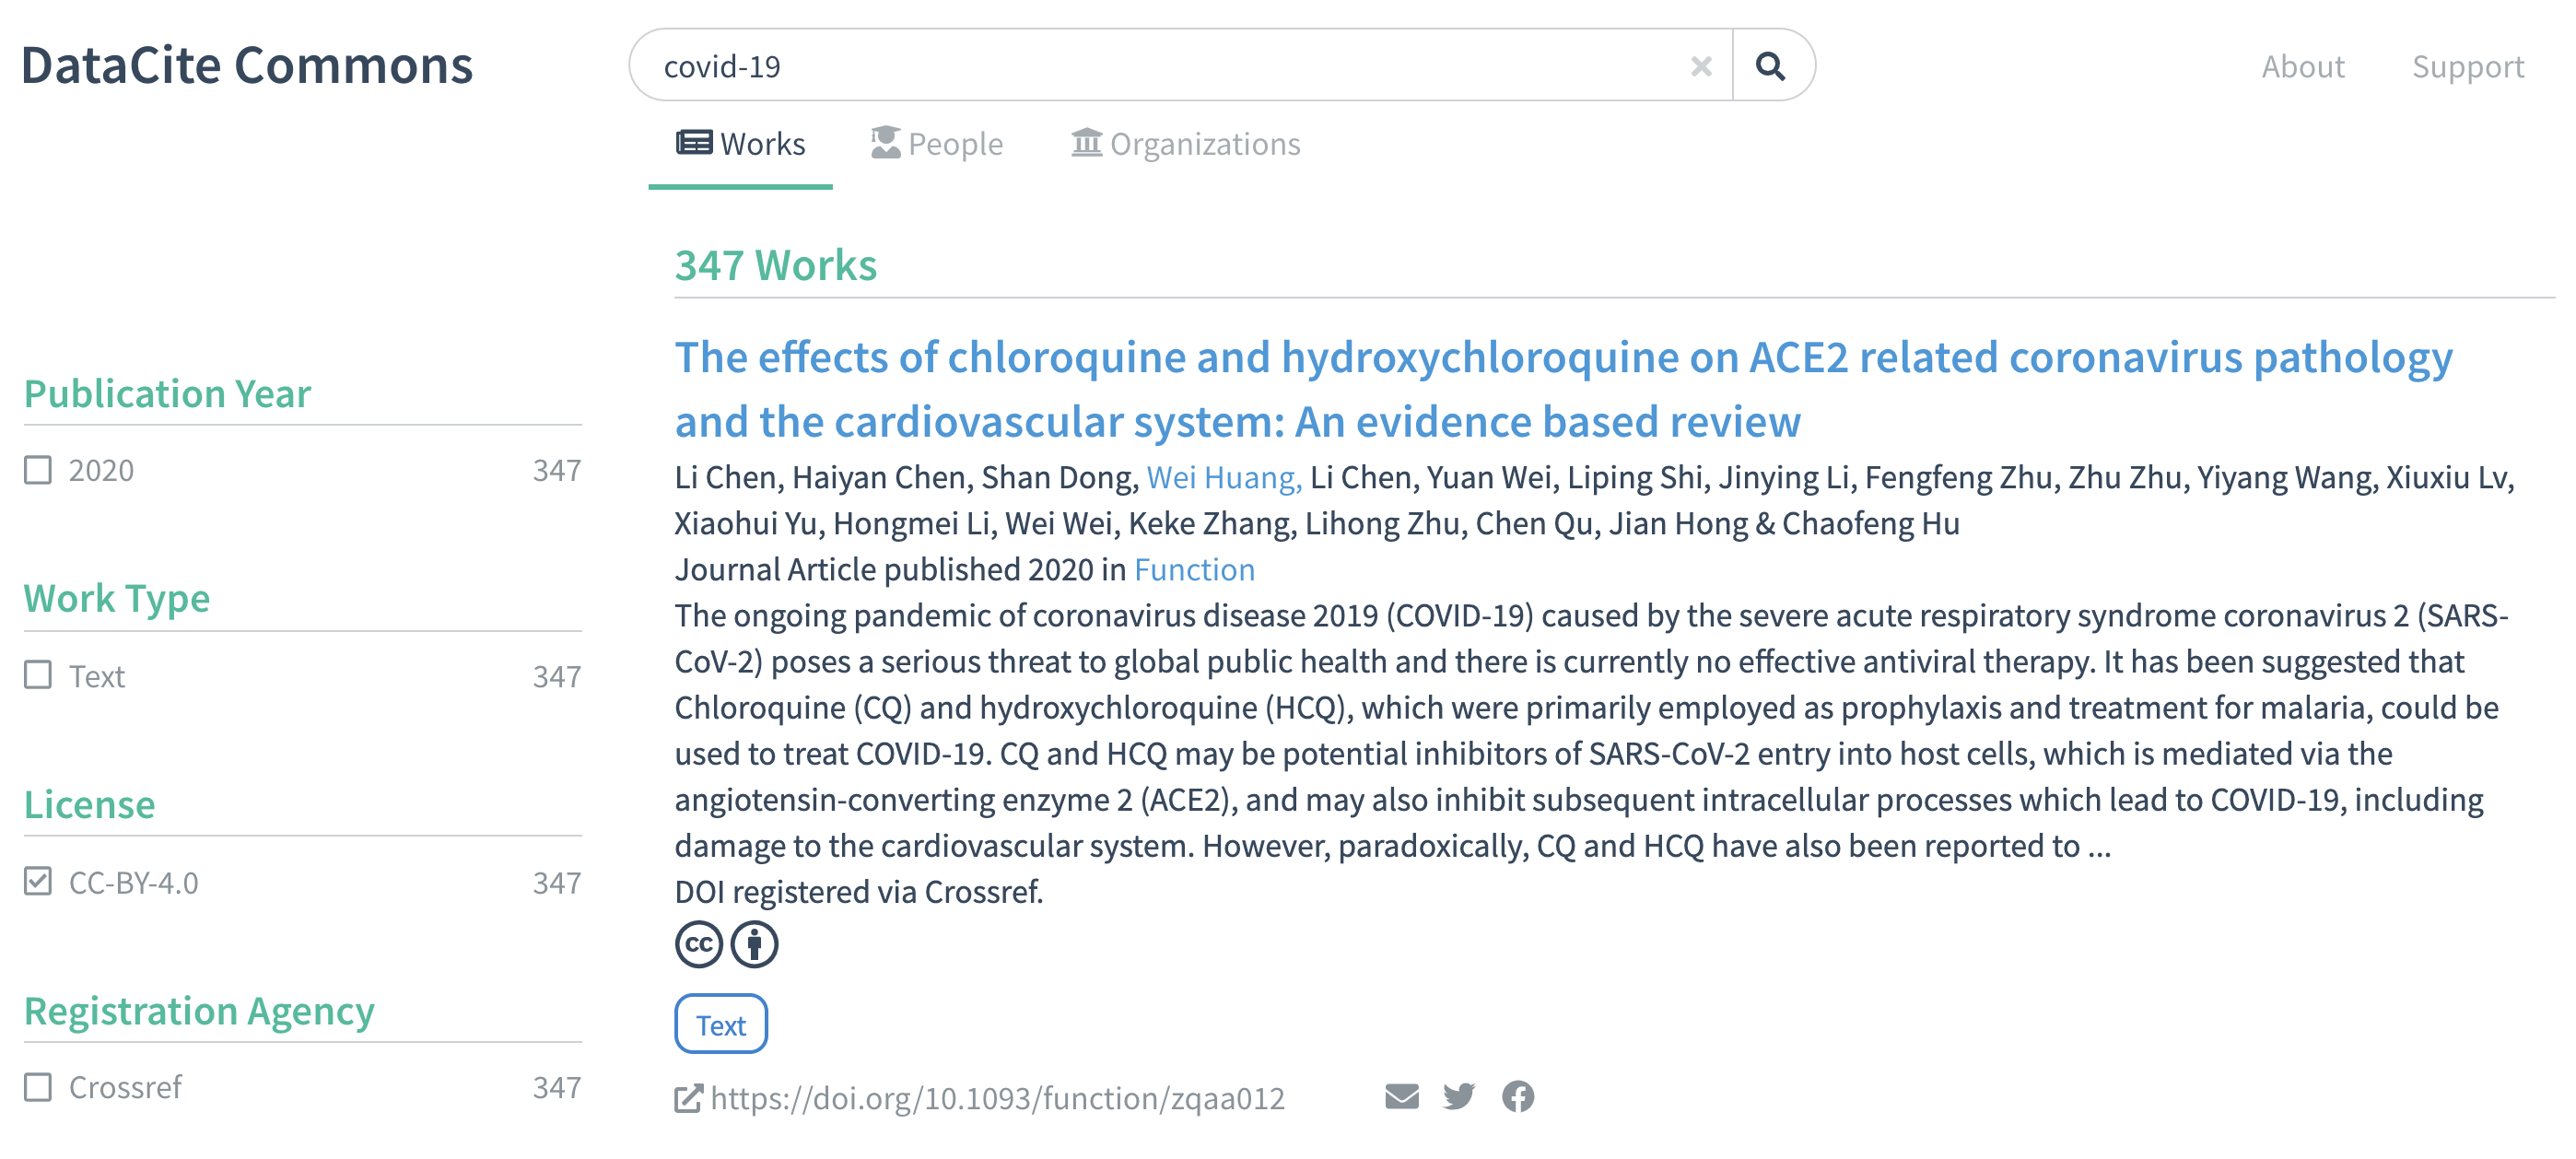 Search for works by keyword COVID-19, filtered by license CC-BY 4.0. https://commons.datacite.org/doi.org?query=covid-19&license=cc-by-4.0